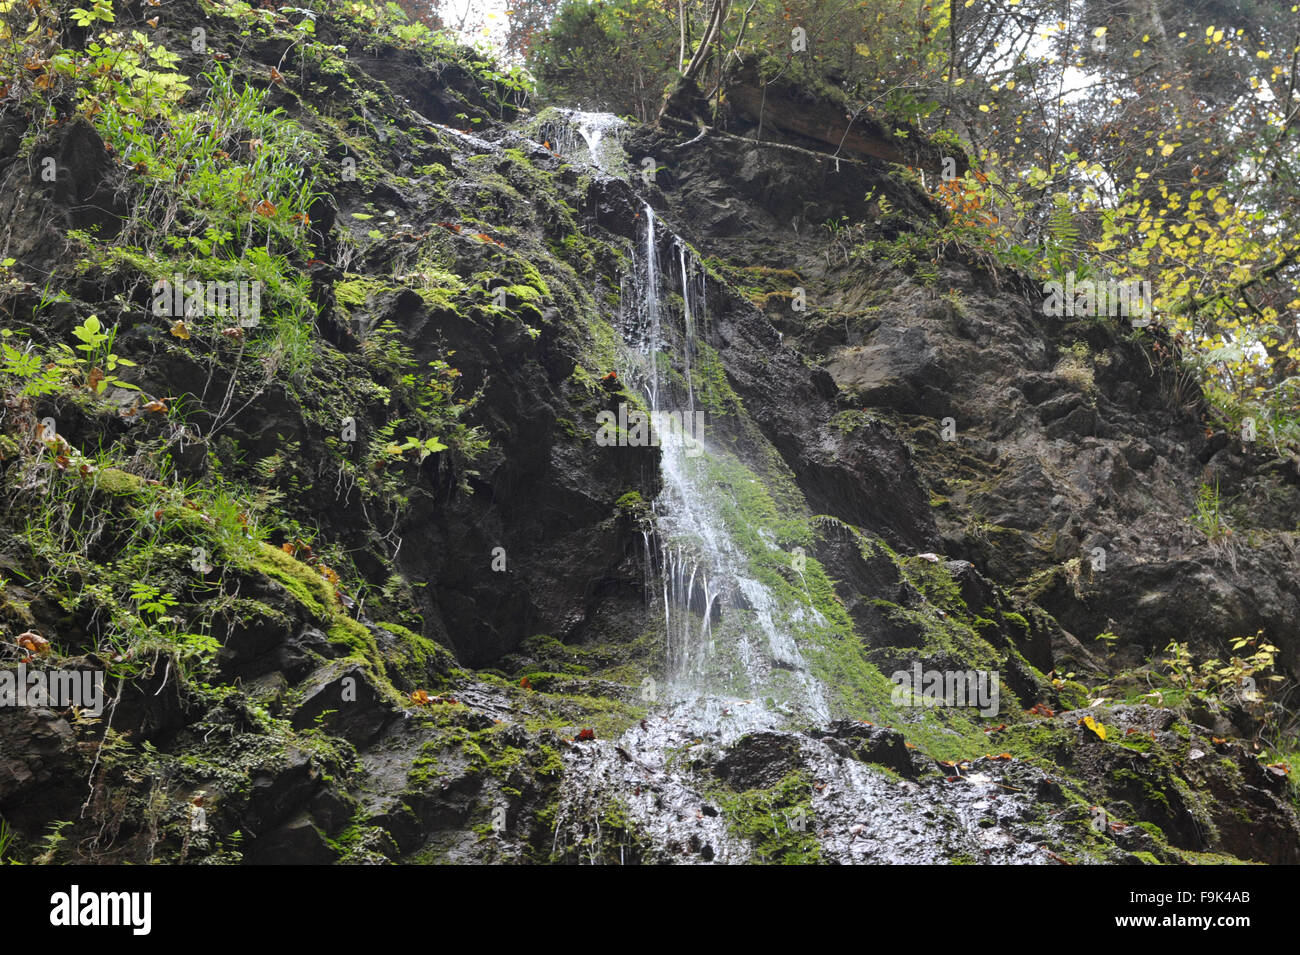 waterfall in lotenbachklamm, southern black forest, baden-württemberg, germany - Stock Image